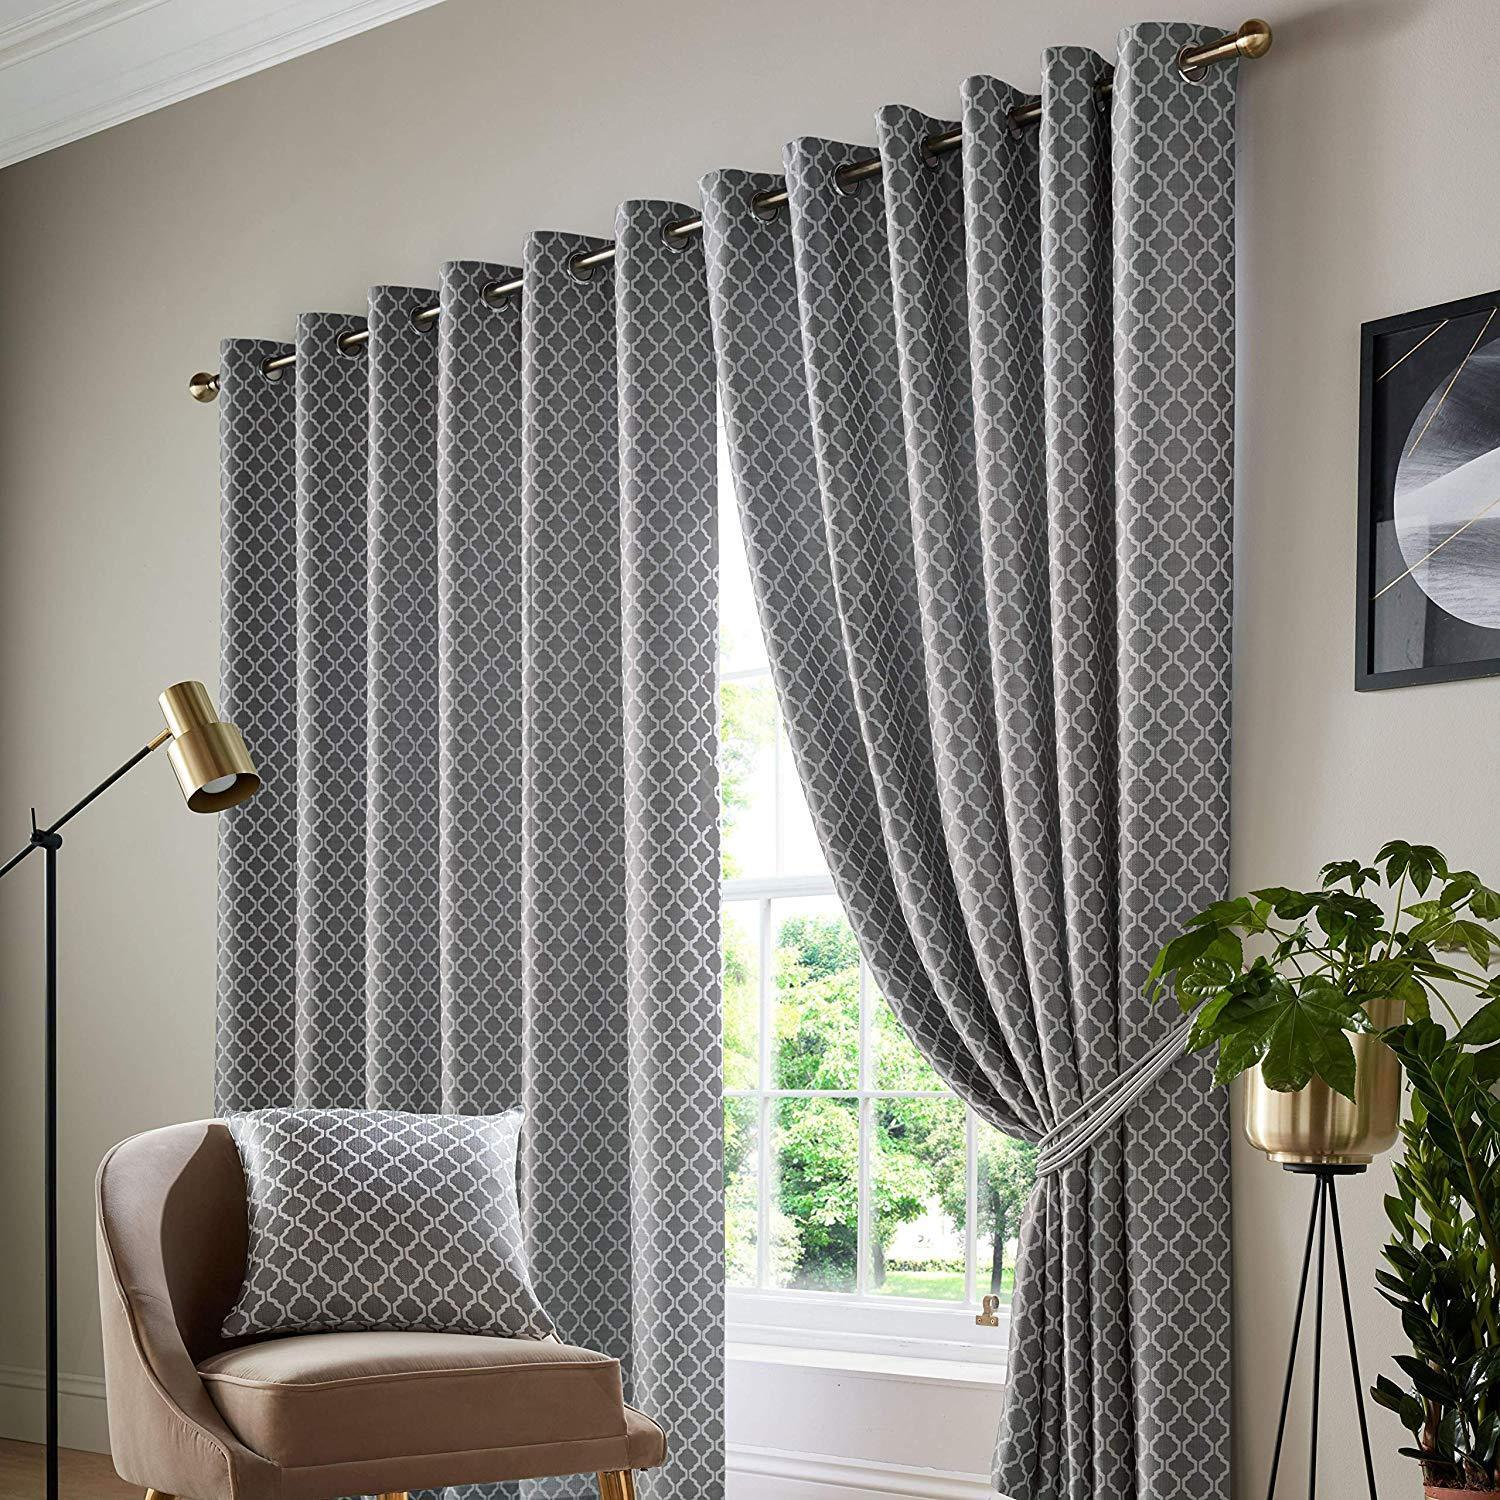 1 Pair Of COTSWOLD COTSWOLD COTSWOLD Soft Jacquard Fully Lined Eyelet Ring Top Header Curtains c5d56c